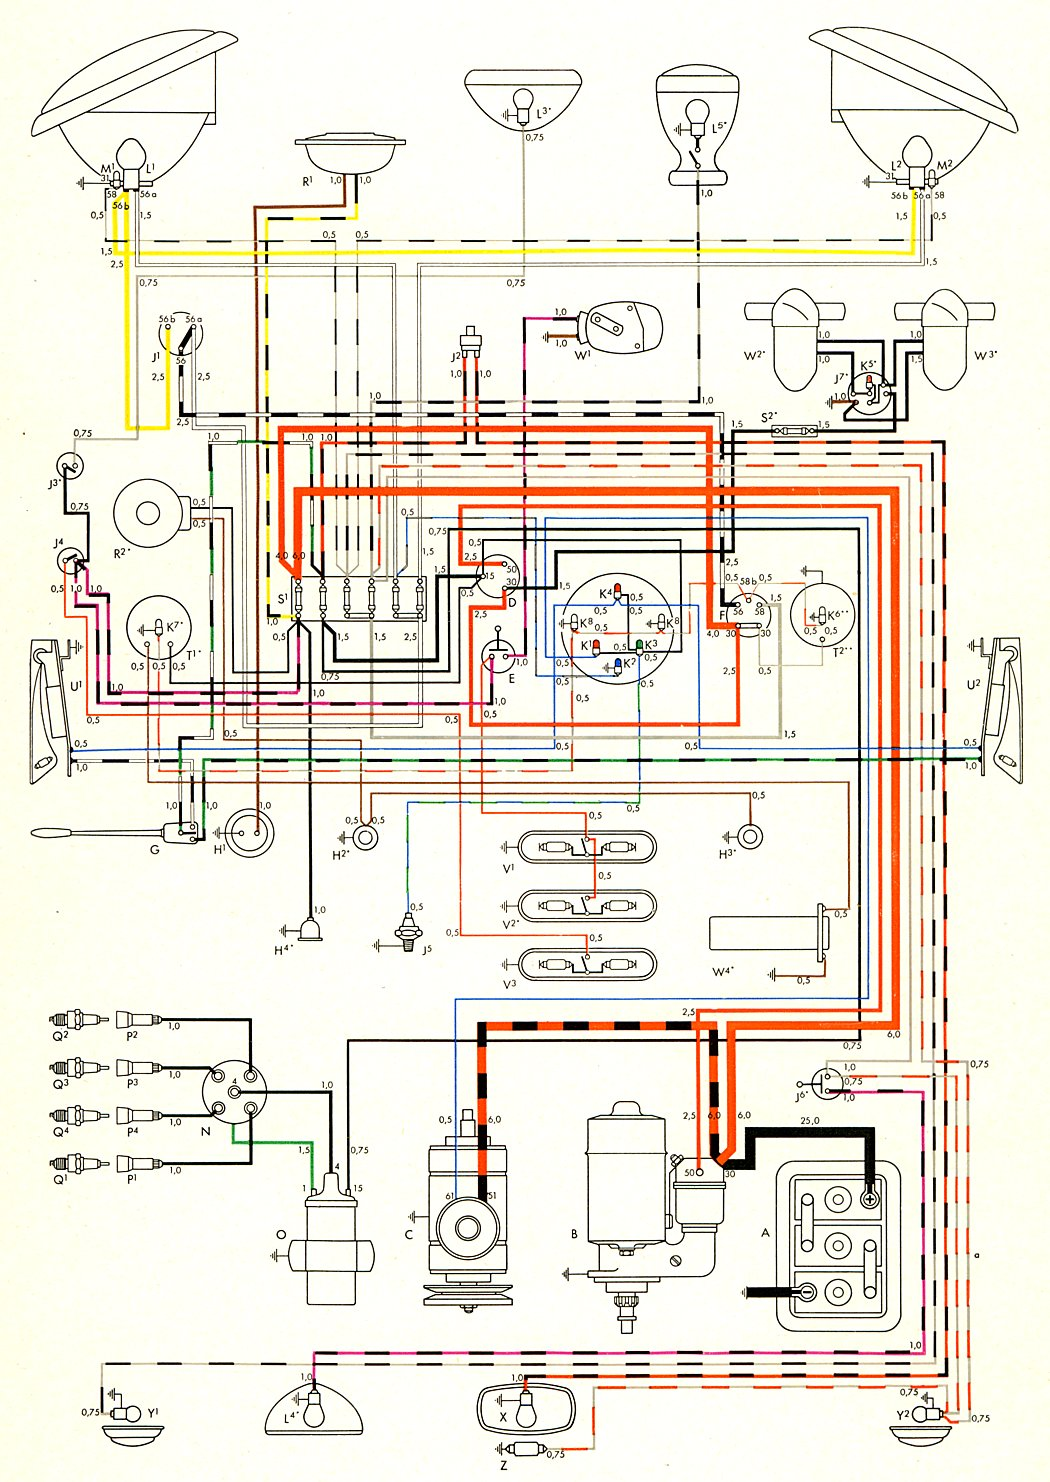 1972 vw bus engine diagram